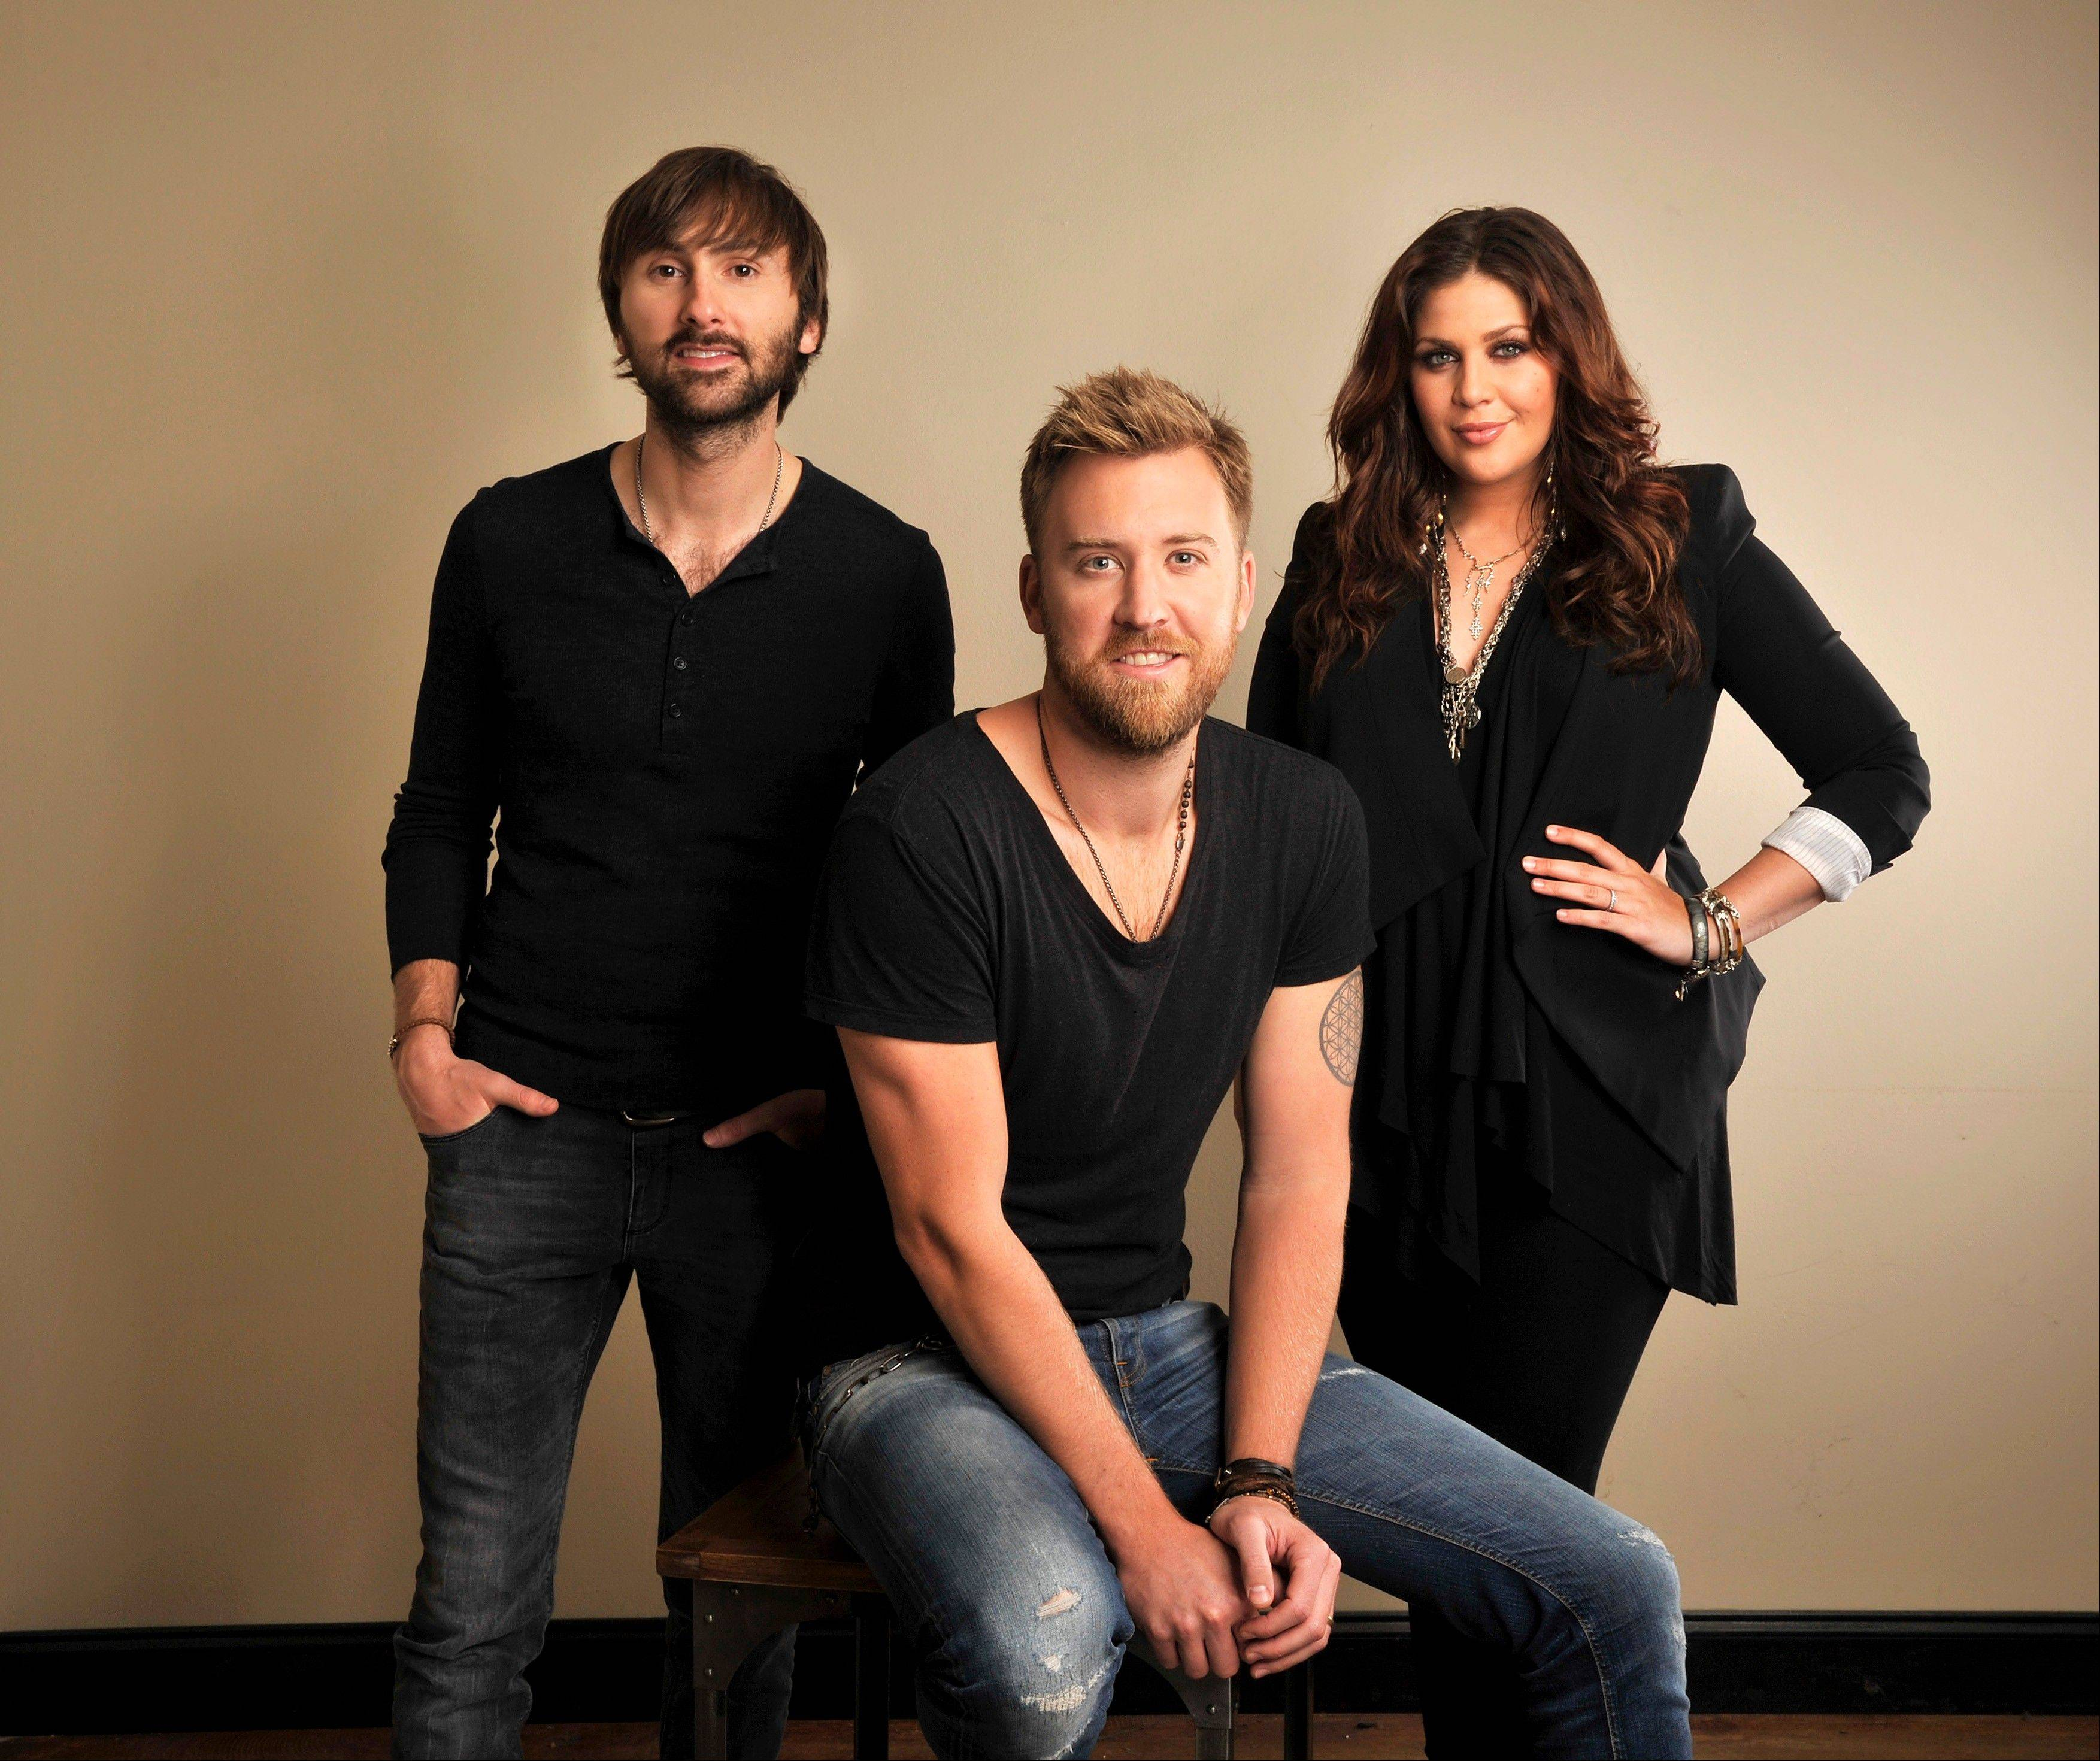 The band Lady Antebellum, featuring Dave Haywood, Charles Kelley and Hillary Scott, has rescheduled its upcoming concert date at the Allstate Arena in Rosemont.